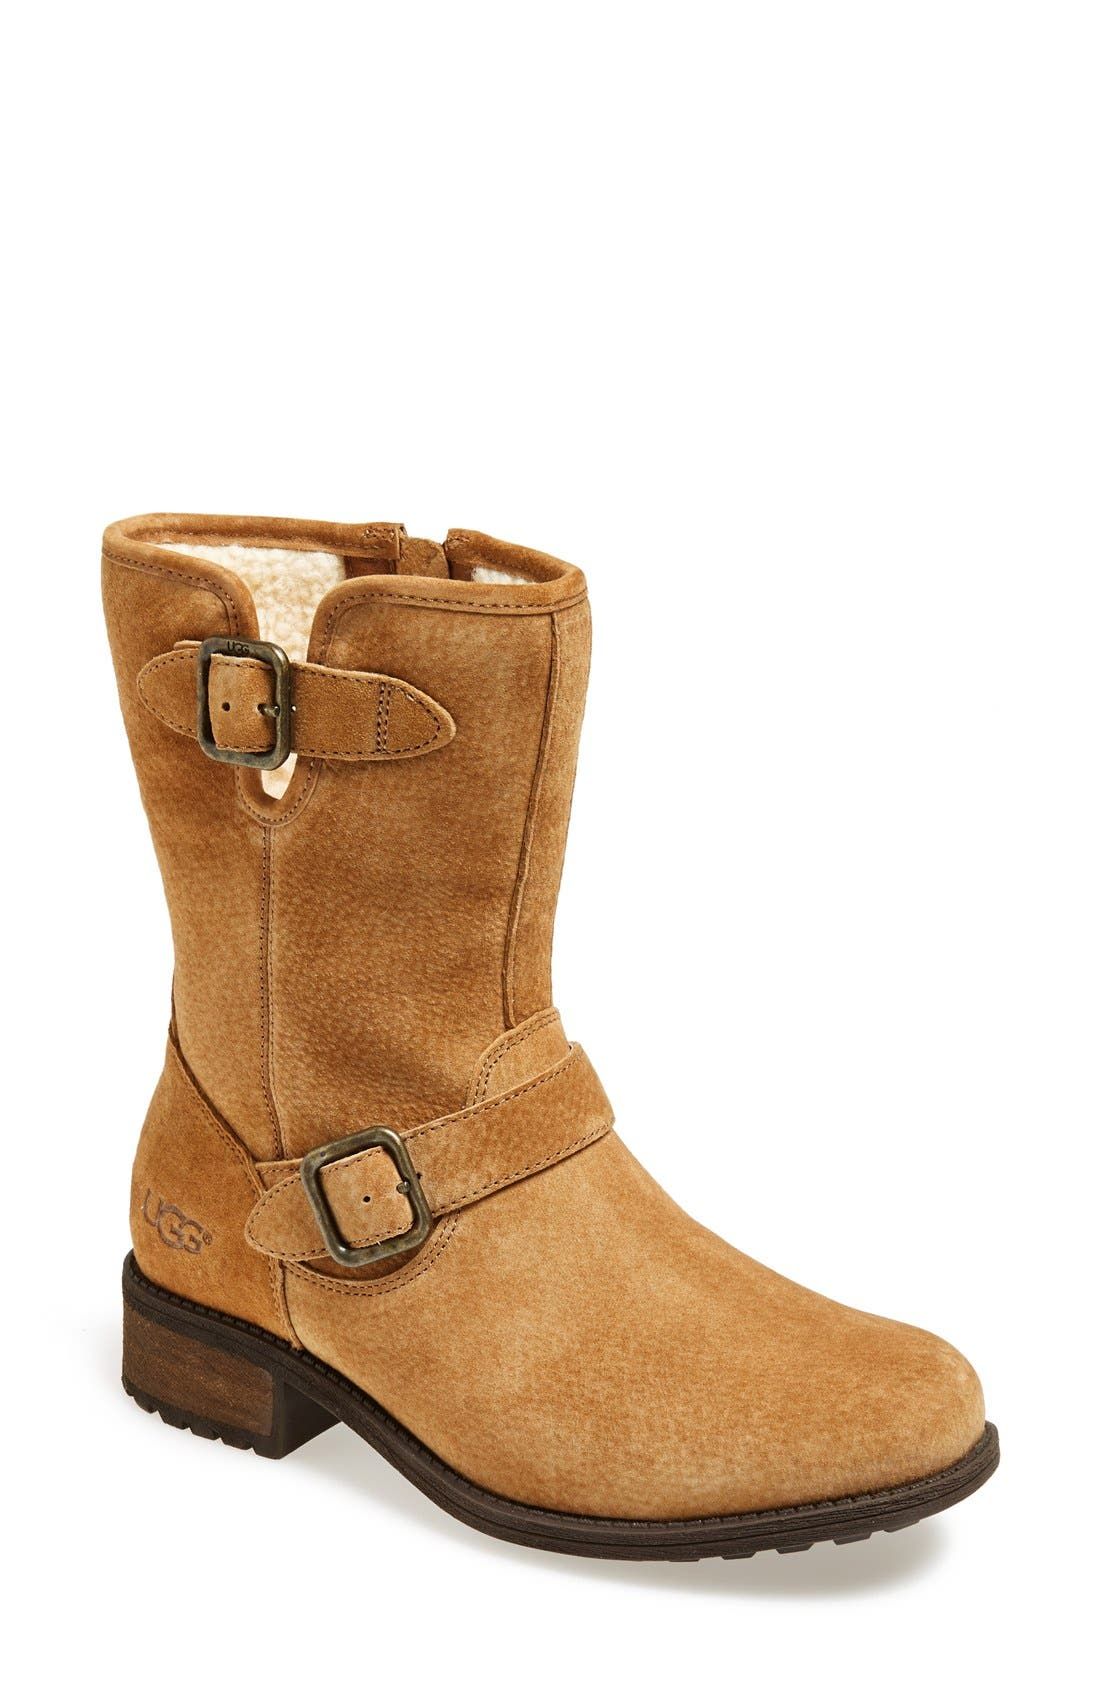 Alternate Image 1 Selected - UGG® 'Chaney' Water Resistant Suede Moto Boot (Women)